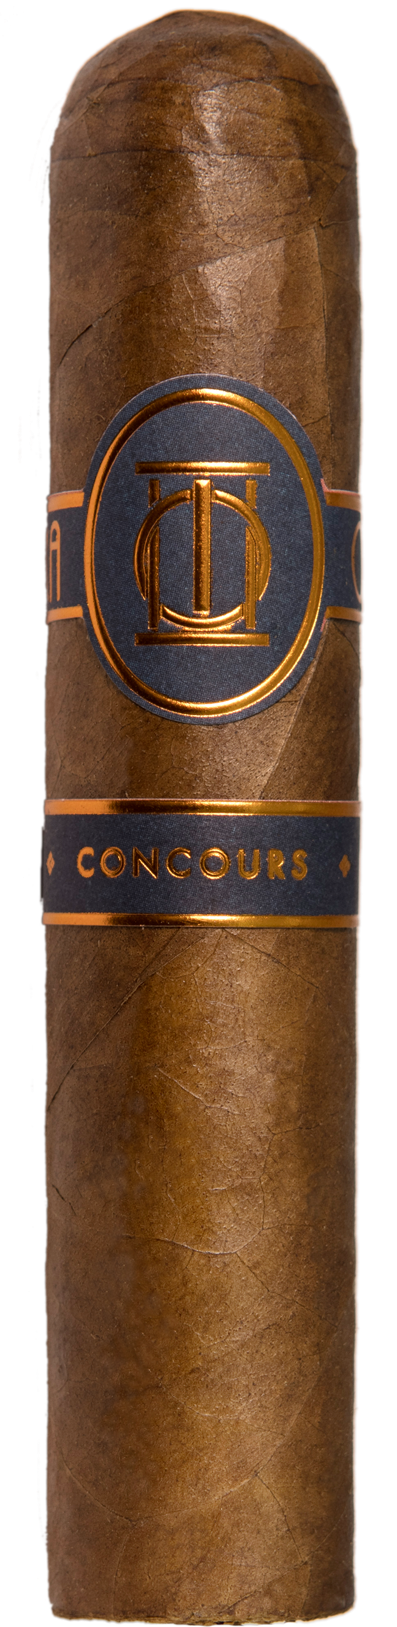 Laura Chavin Concours Robusto - Edition 2019